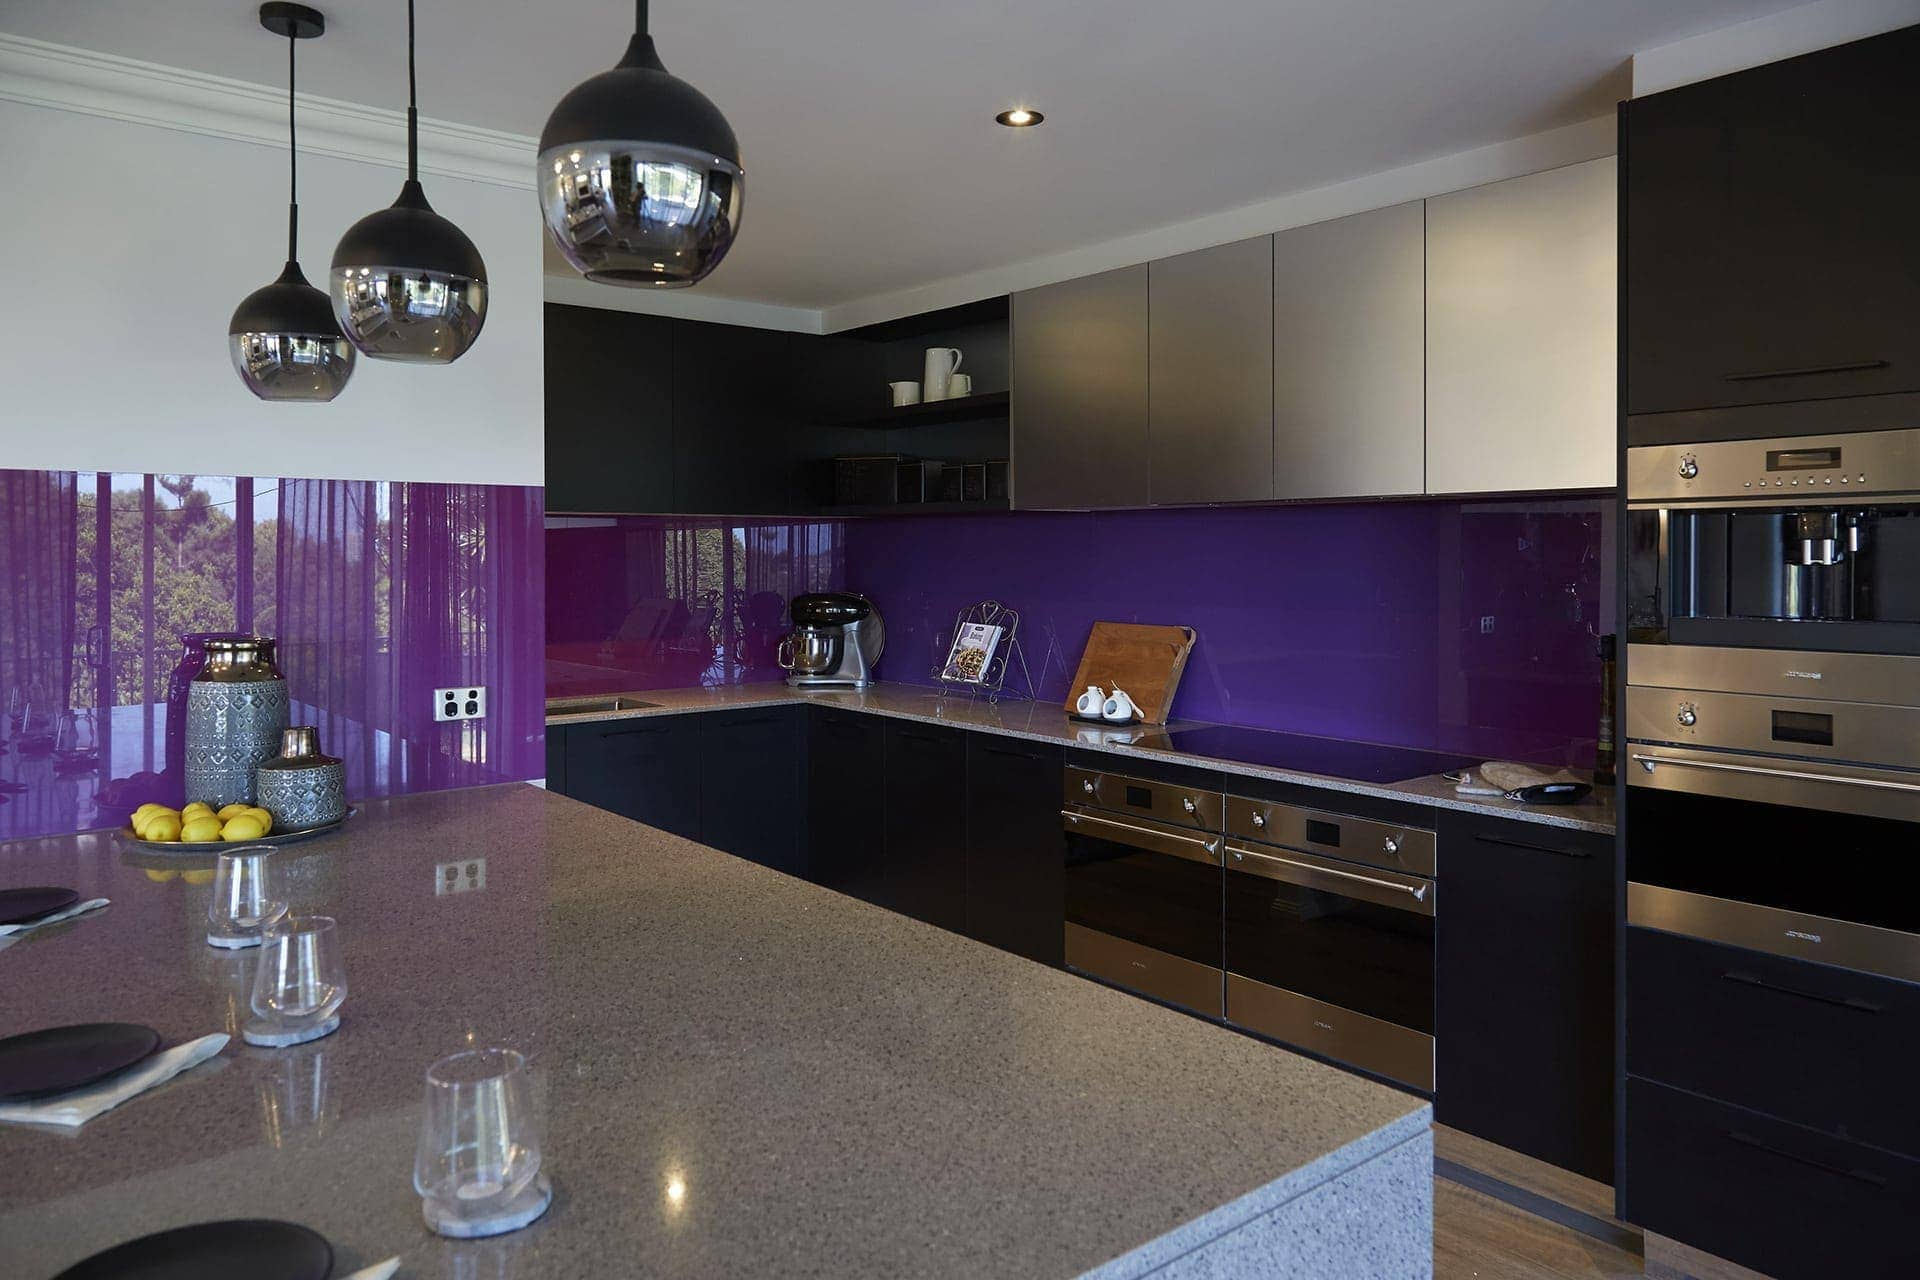 house rules 2018 kim and michelle kitchen with purple splashback